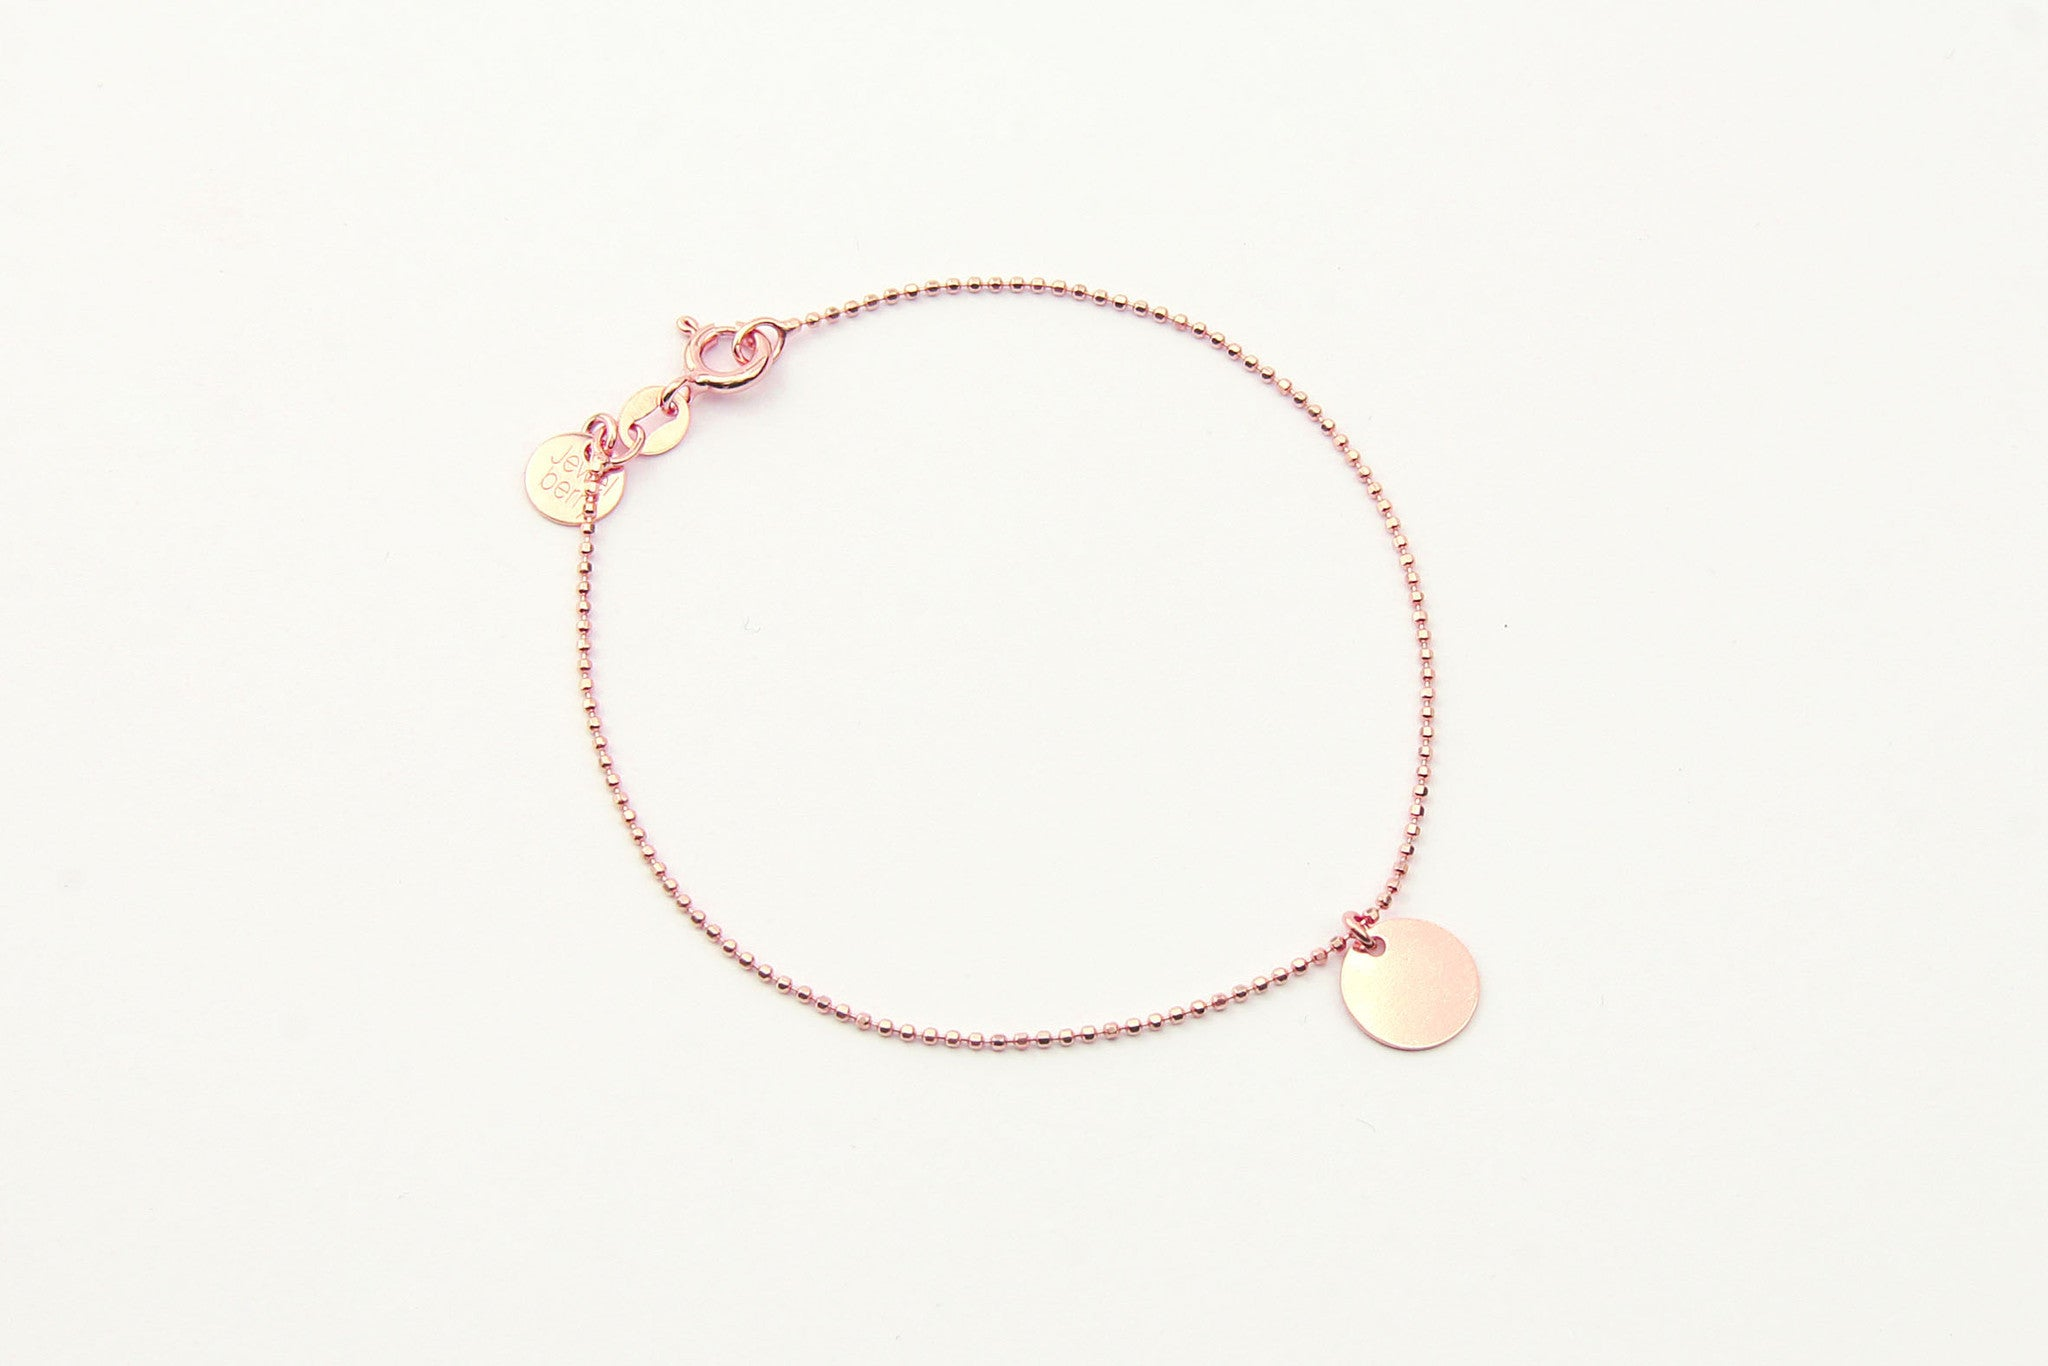 jewelberry armband bracelet small disc rose gold plated sterling silver fine jewelry handmade with love fairtrade bead chain